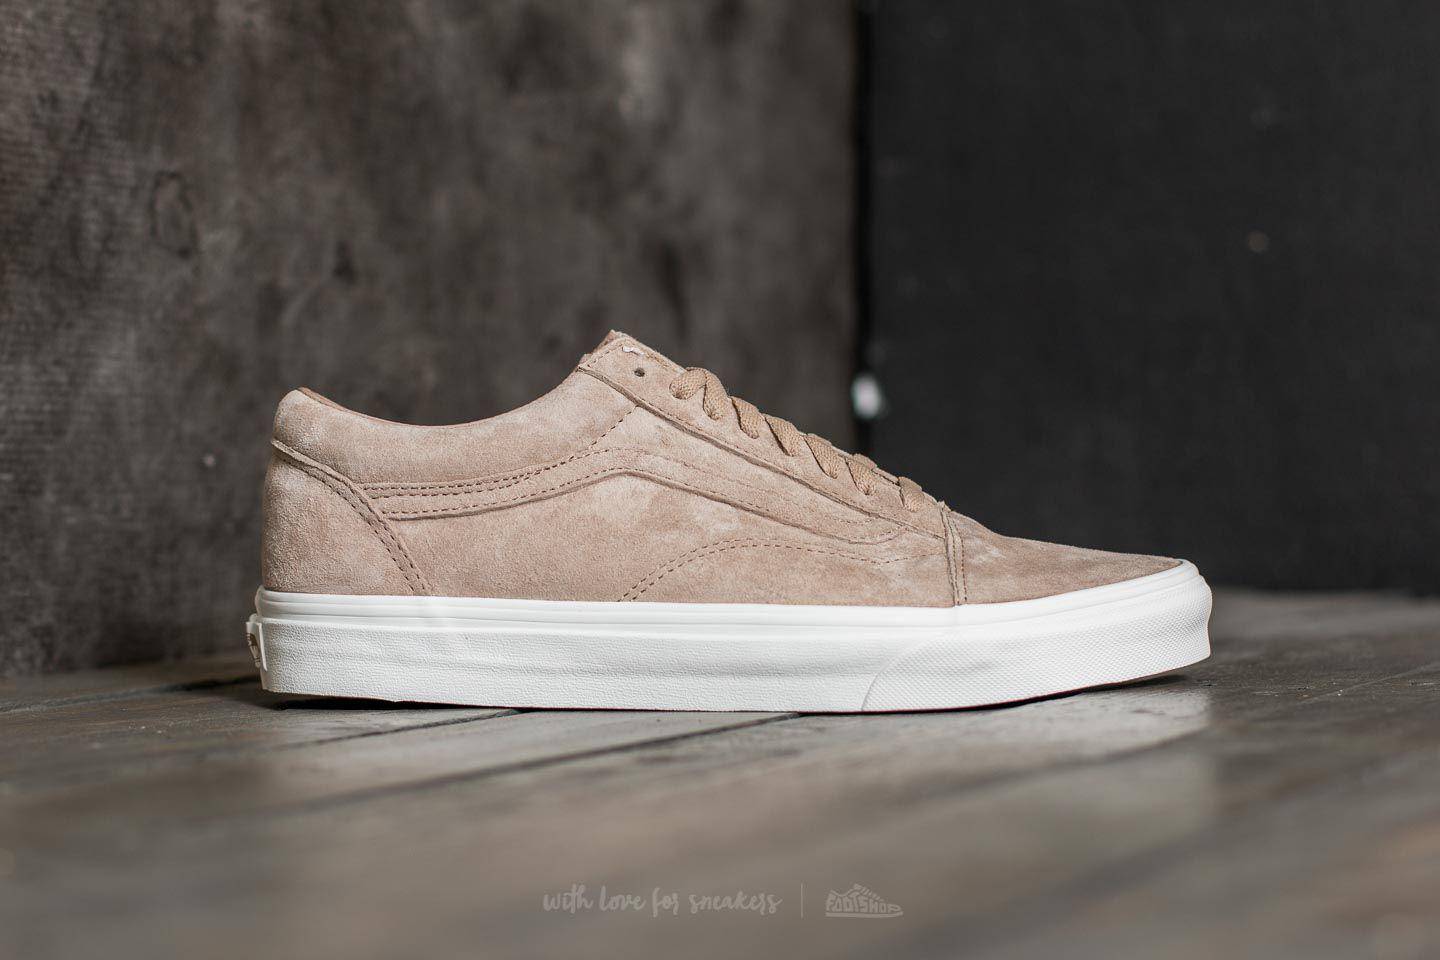 quality products hot products low price sale Old Skool (pig Suede) Humus/ Blac De Blanc